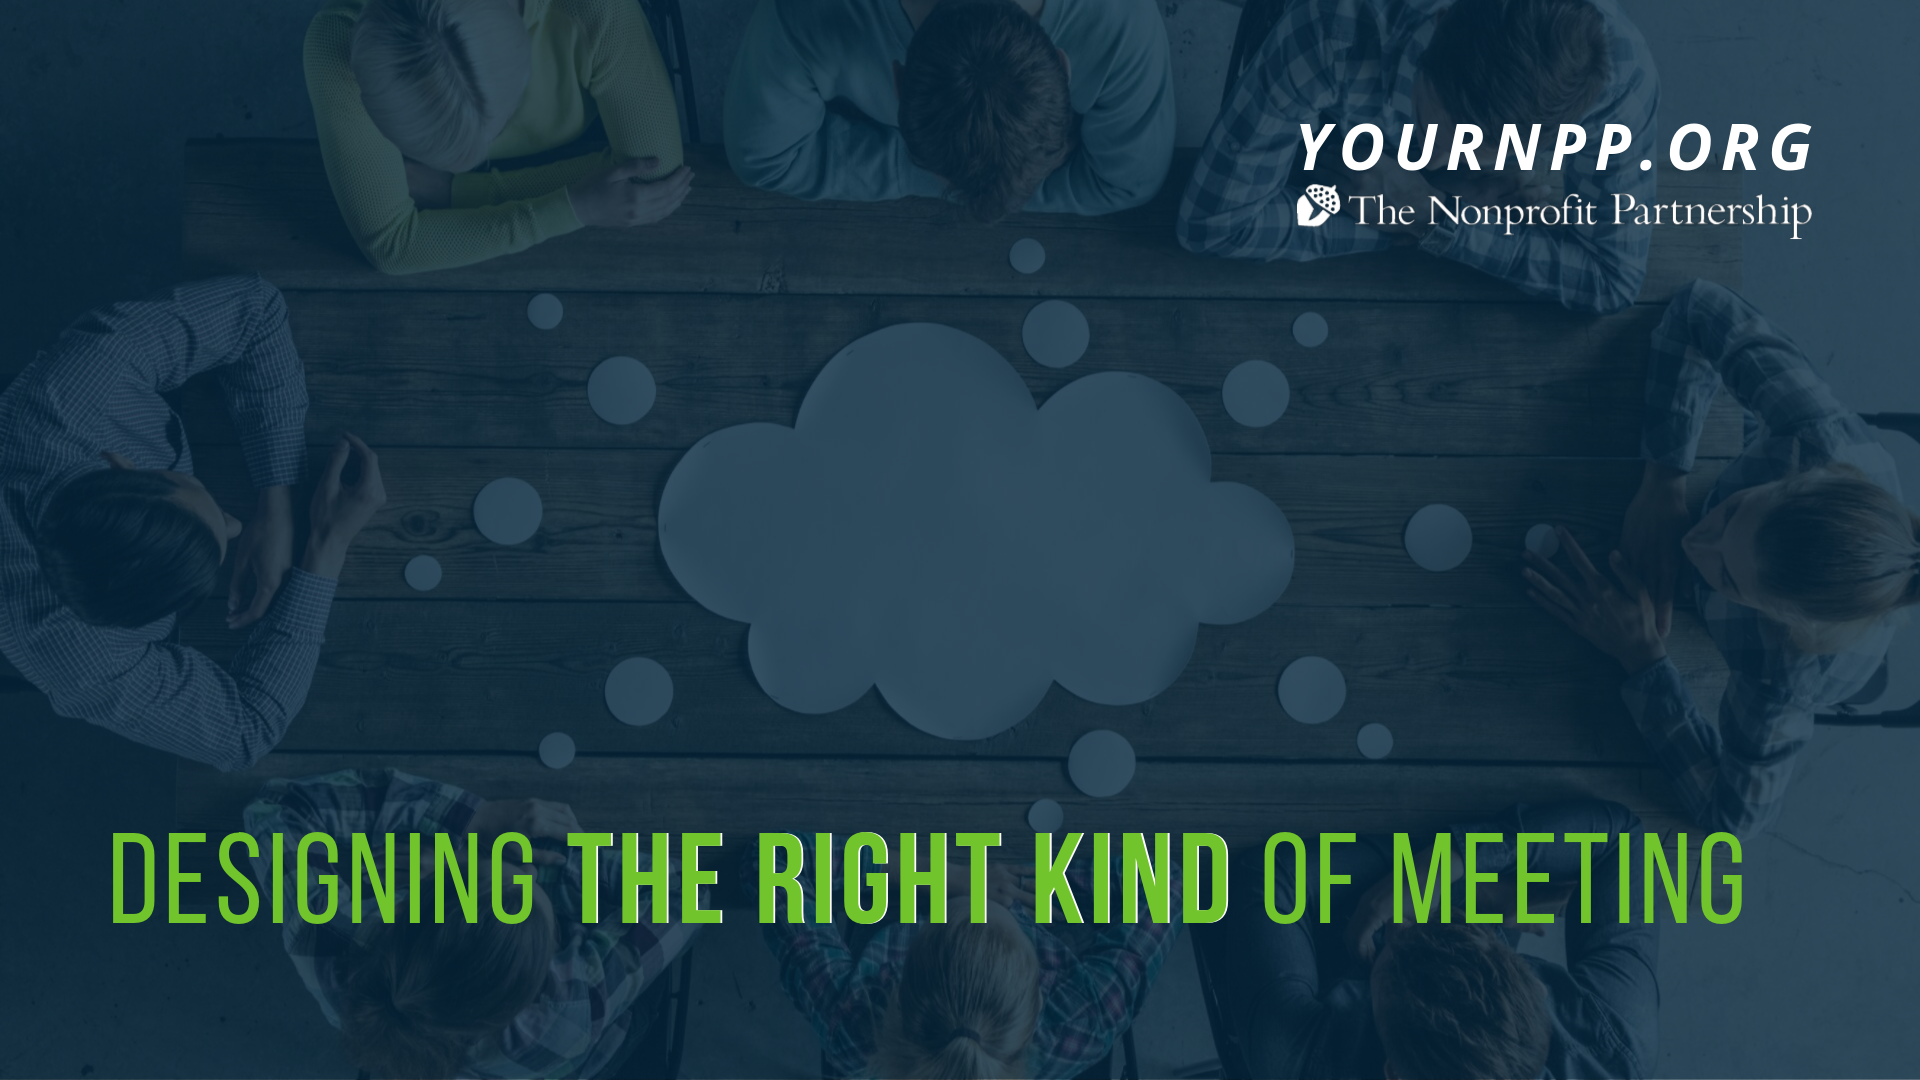 Designing the Right Kind of Meeting